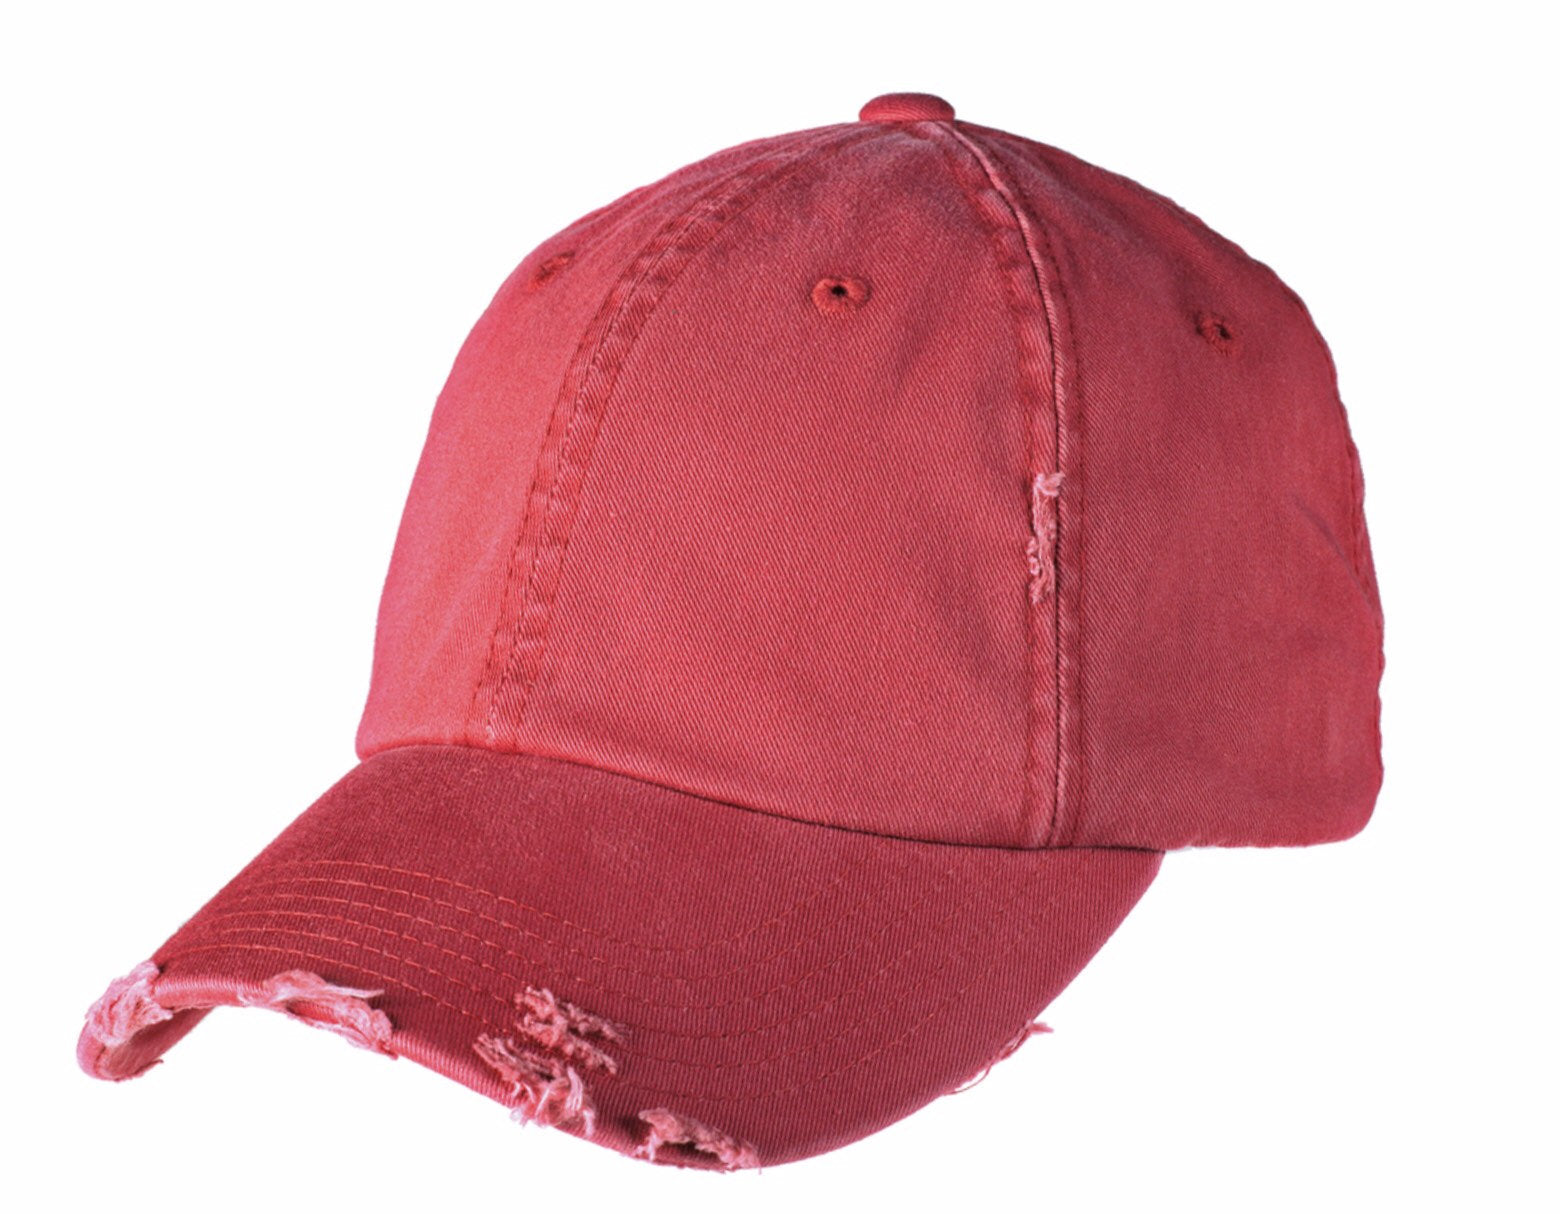 Monogram Sewn Applique Hat